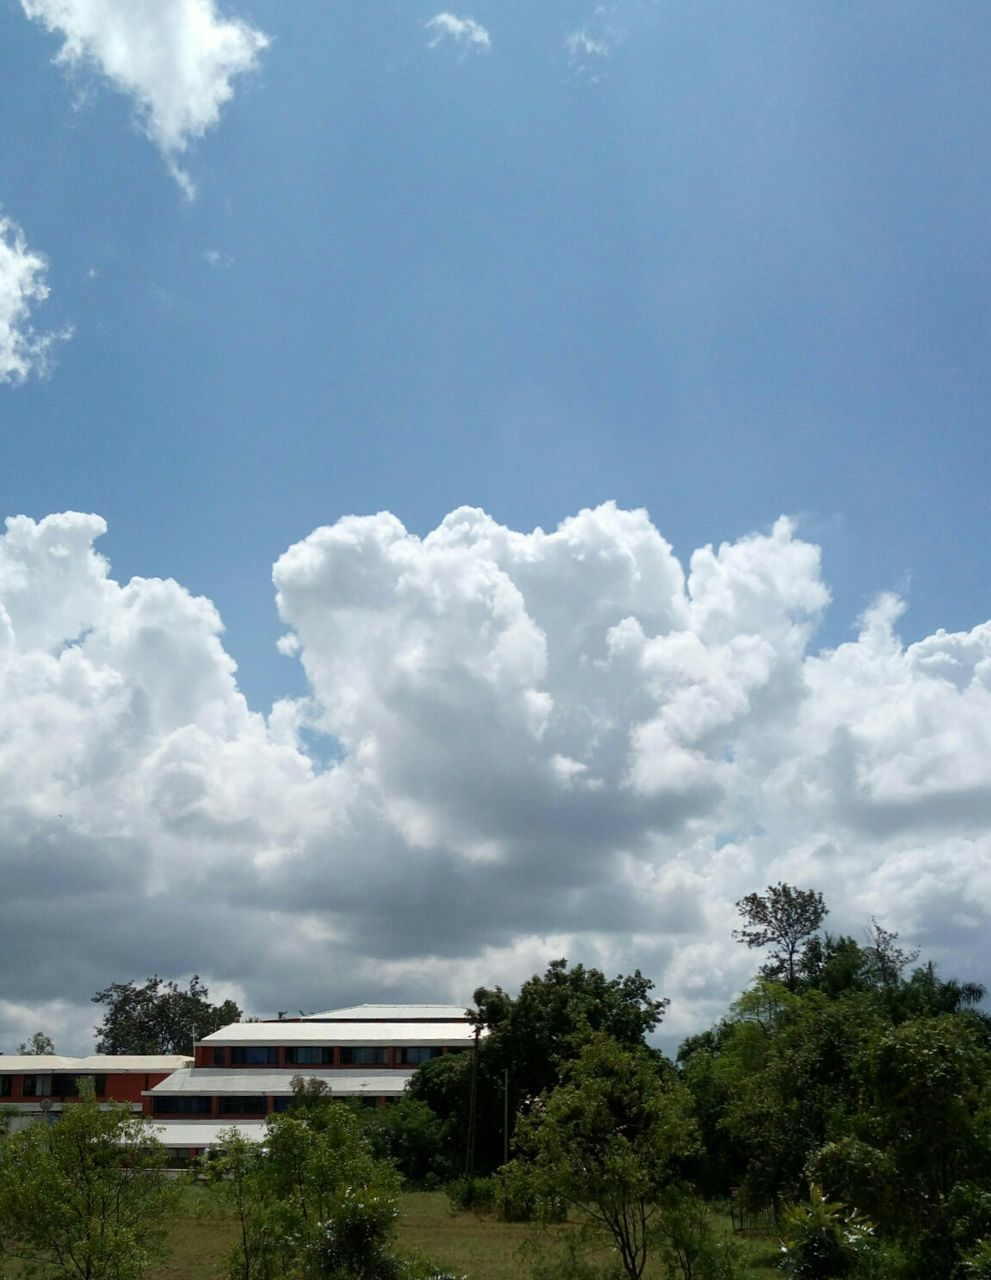 cloud - sky, tree, sky, day, no people, architecture, outdoors, built structure, nature, building exterior, beauty in nature